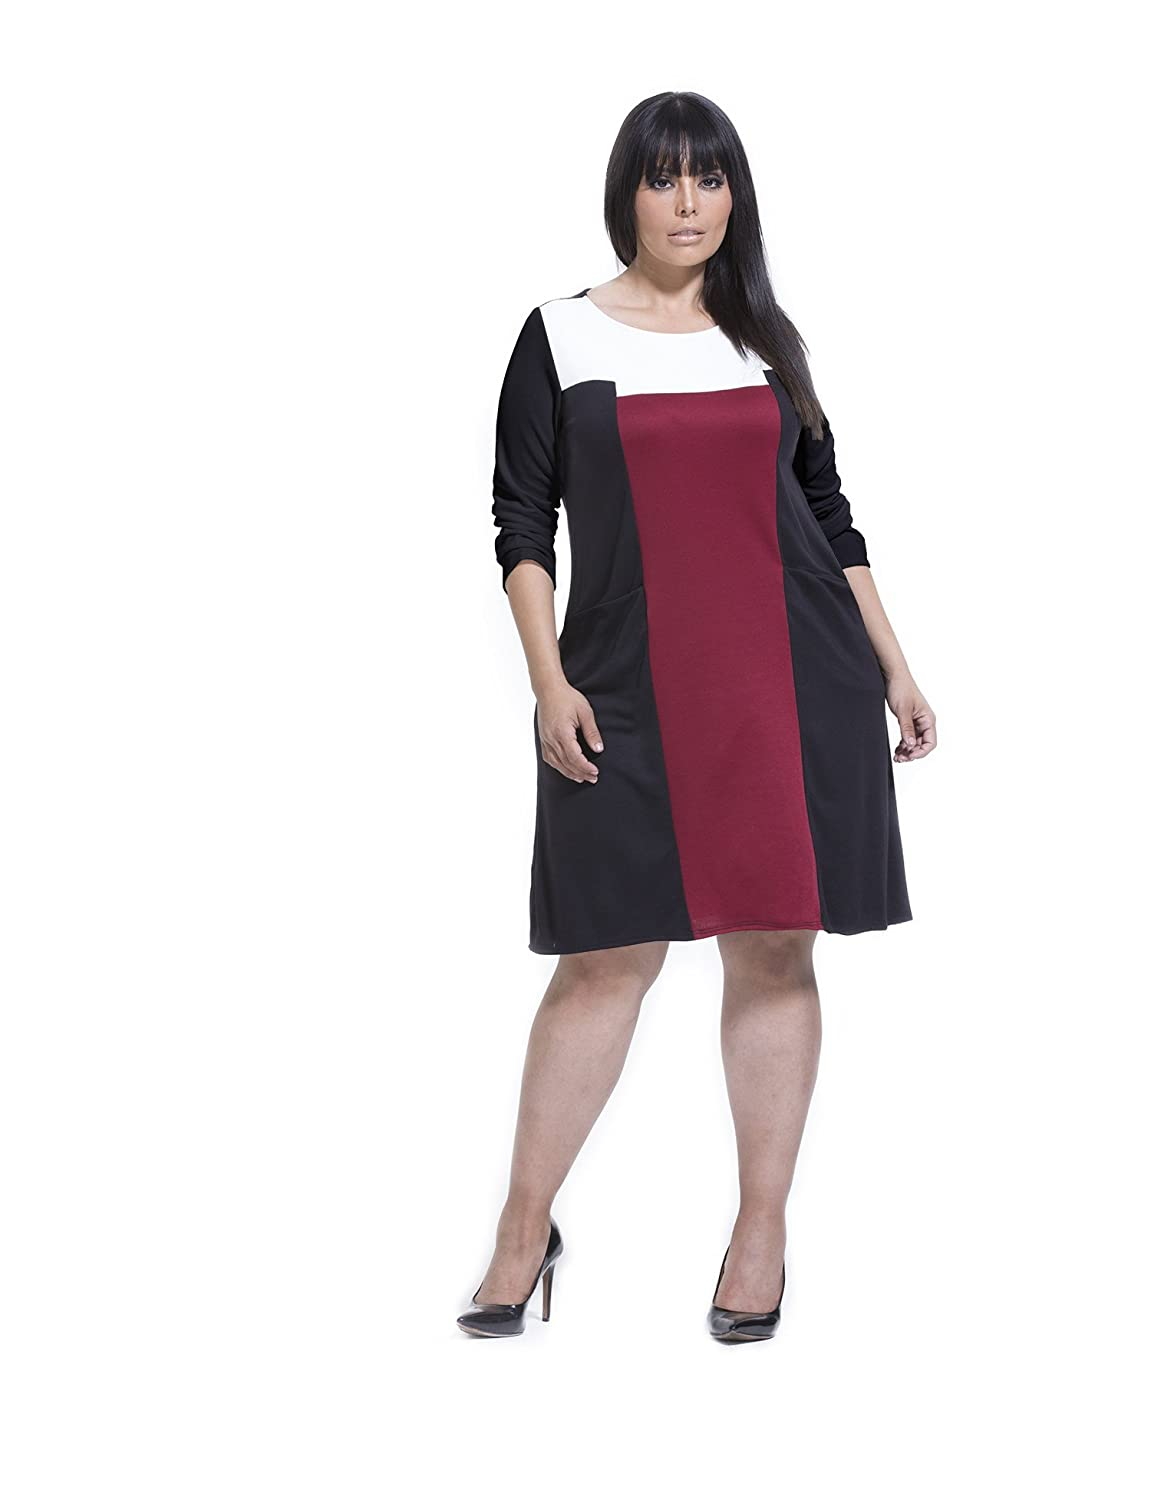 1960s Plus Size Dresses Amp Retro Mod Fashion